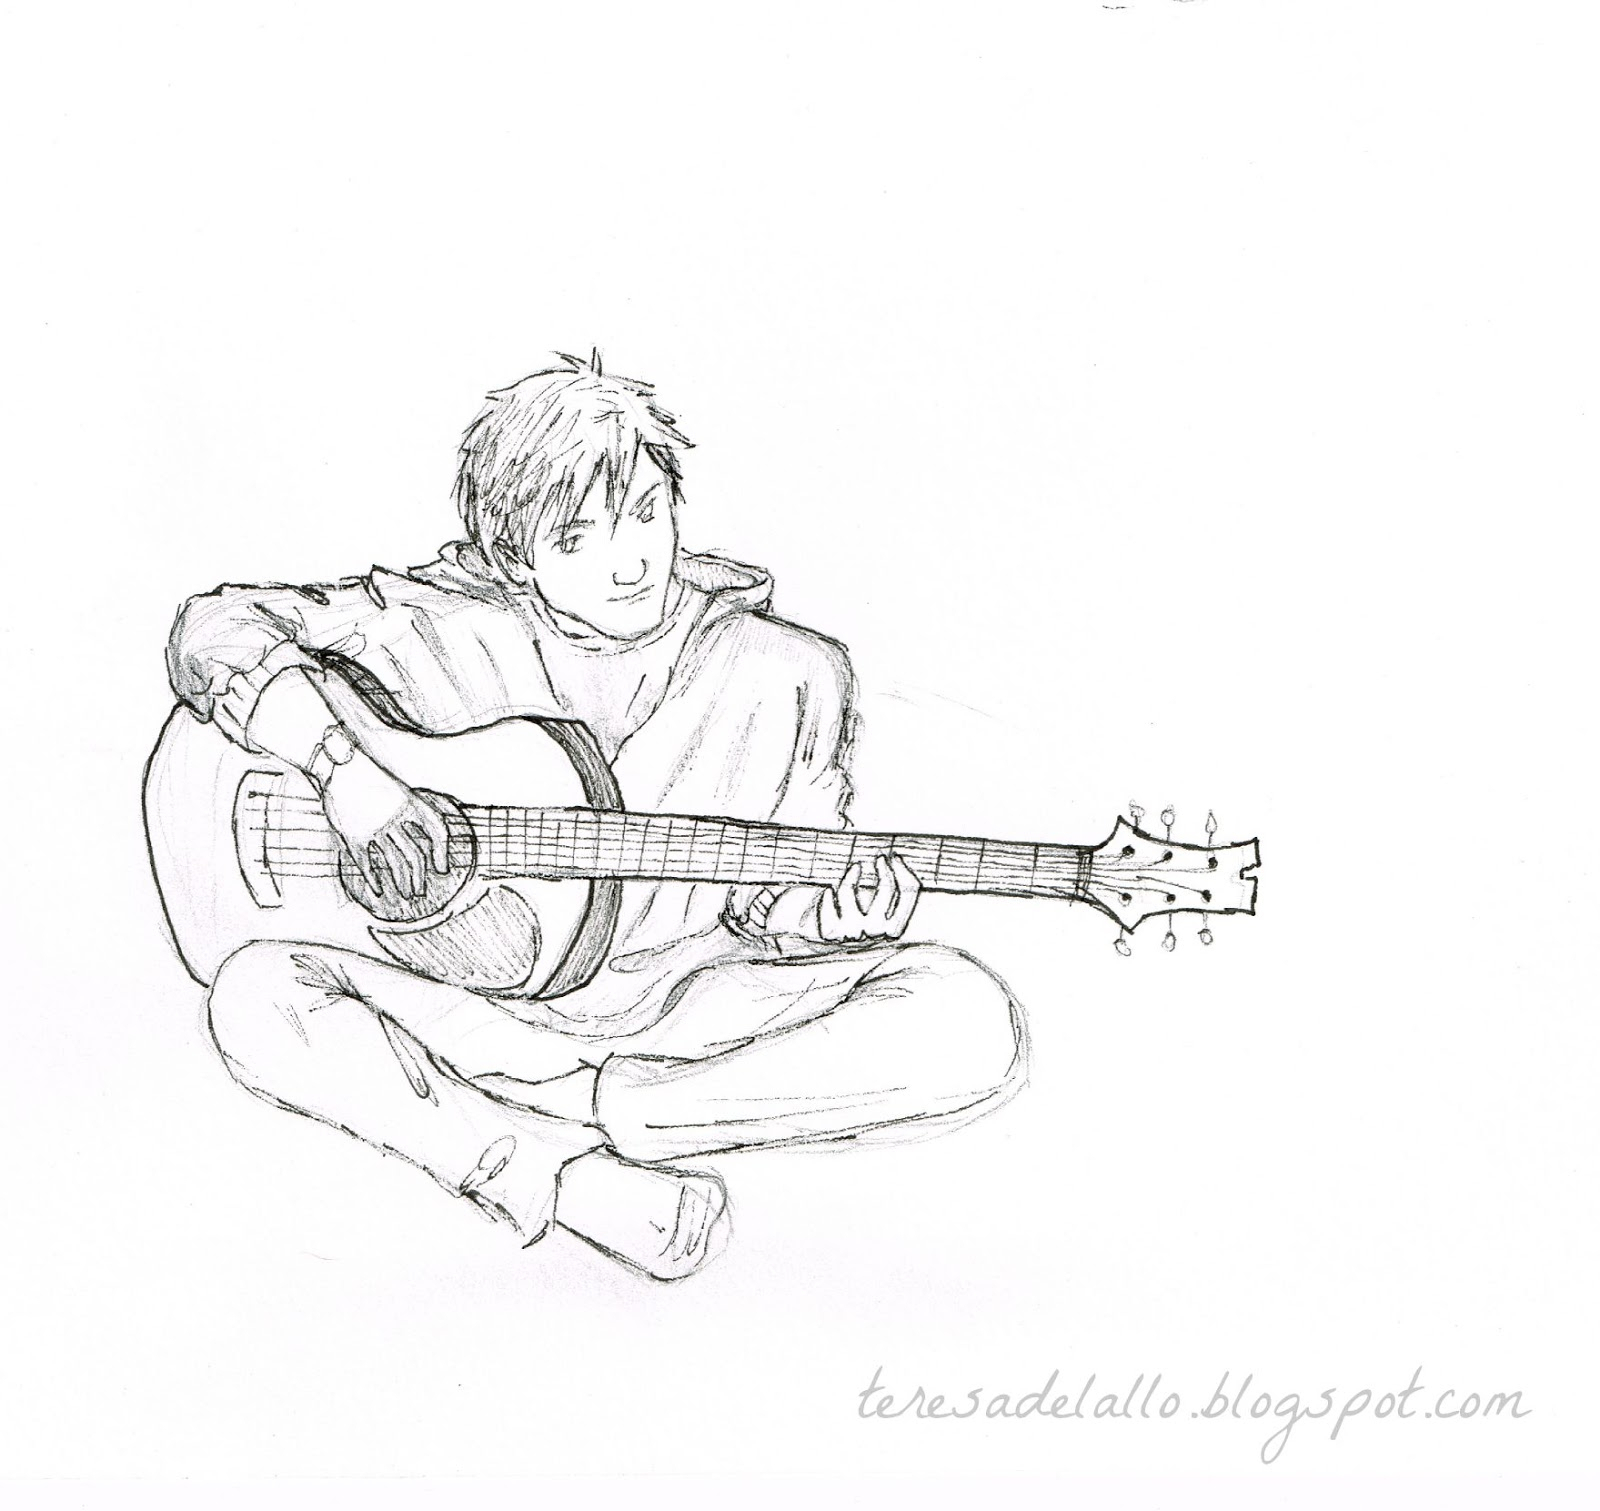 1600x1511 Sad Boy Guitar Pencil Sketch Sad Boy Guitar Pencil Sketch Sad Boy